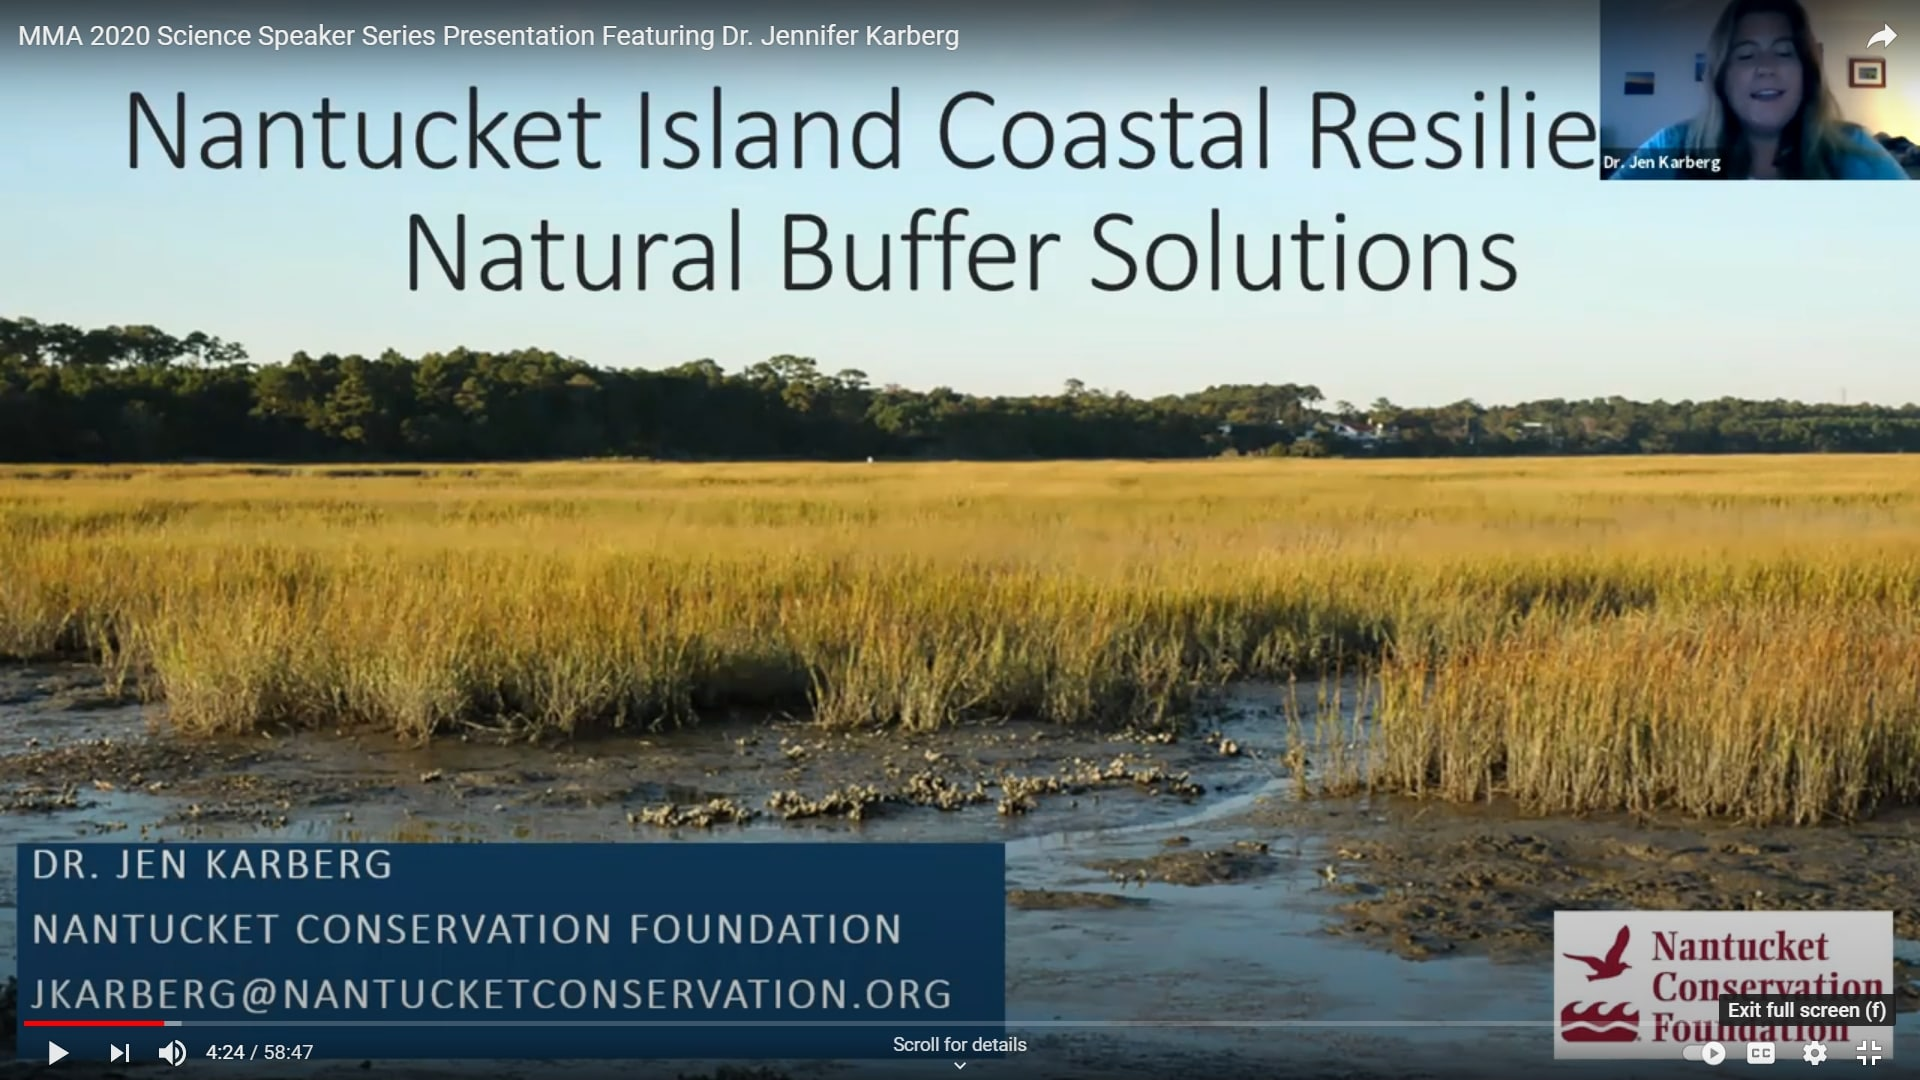 Coastal Resilience The Importance And Function Of Natural Buffers